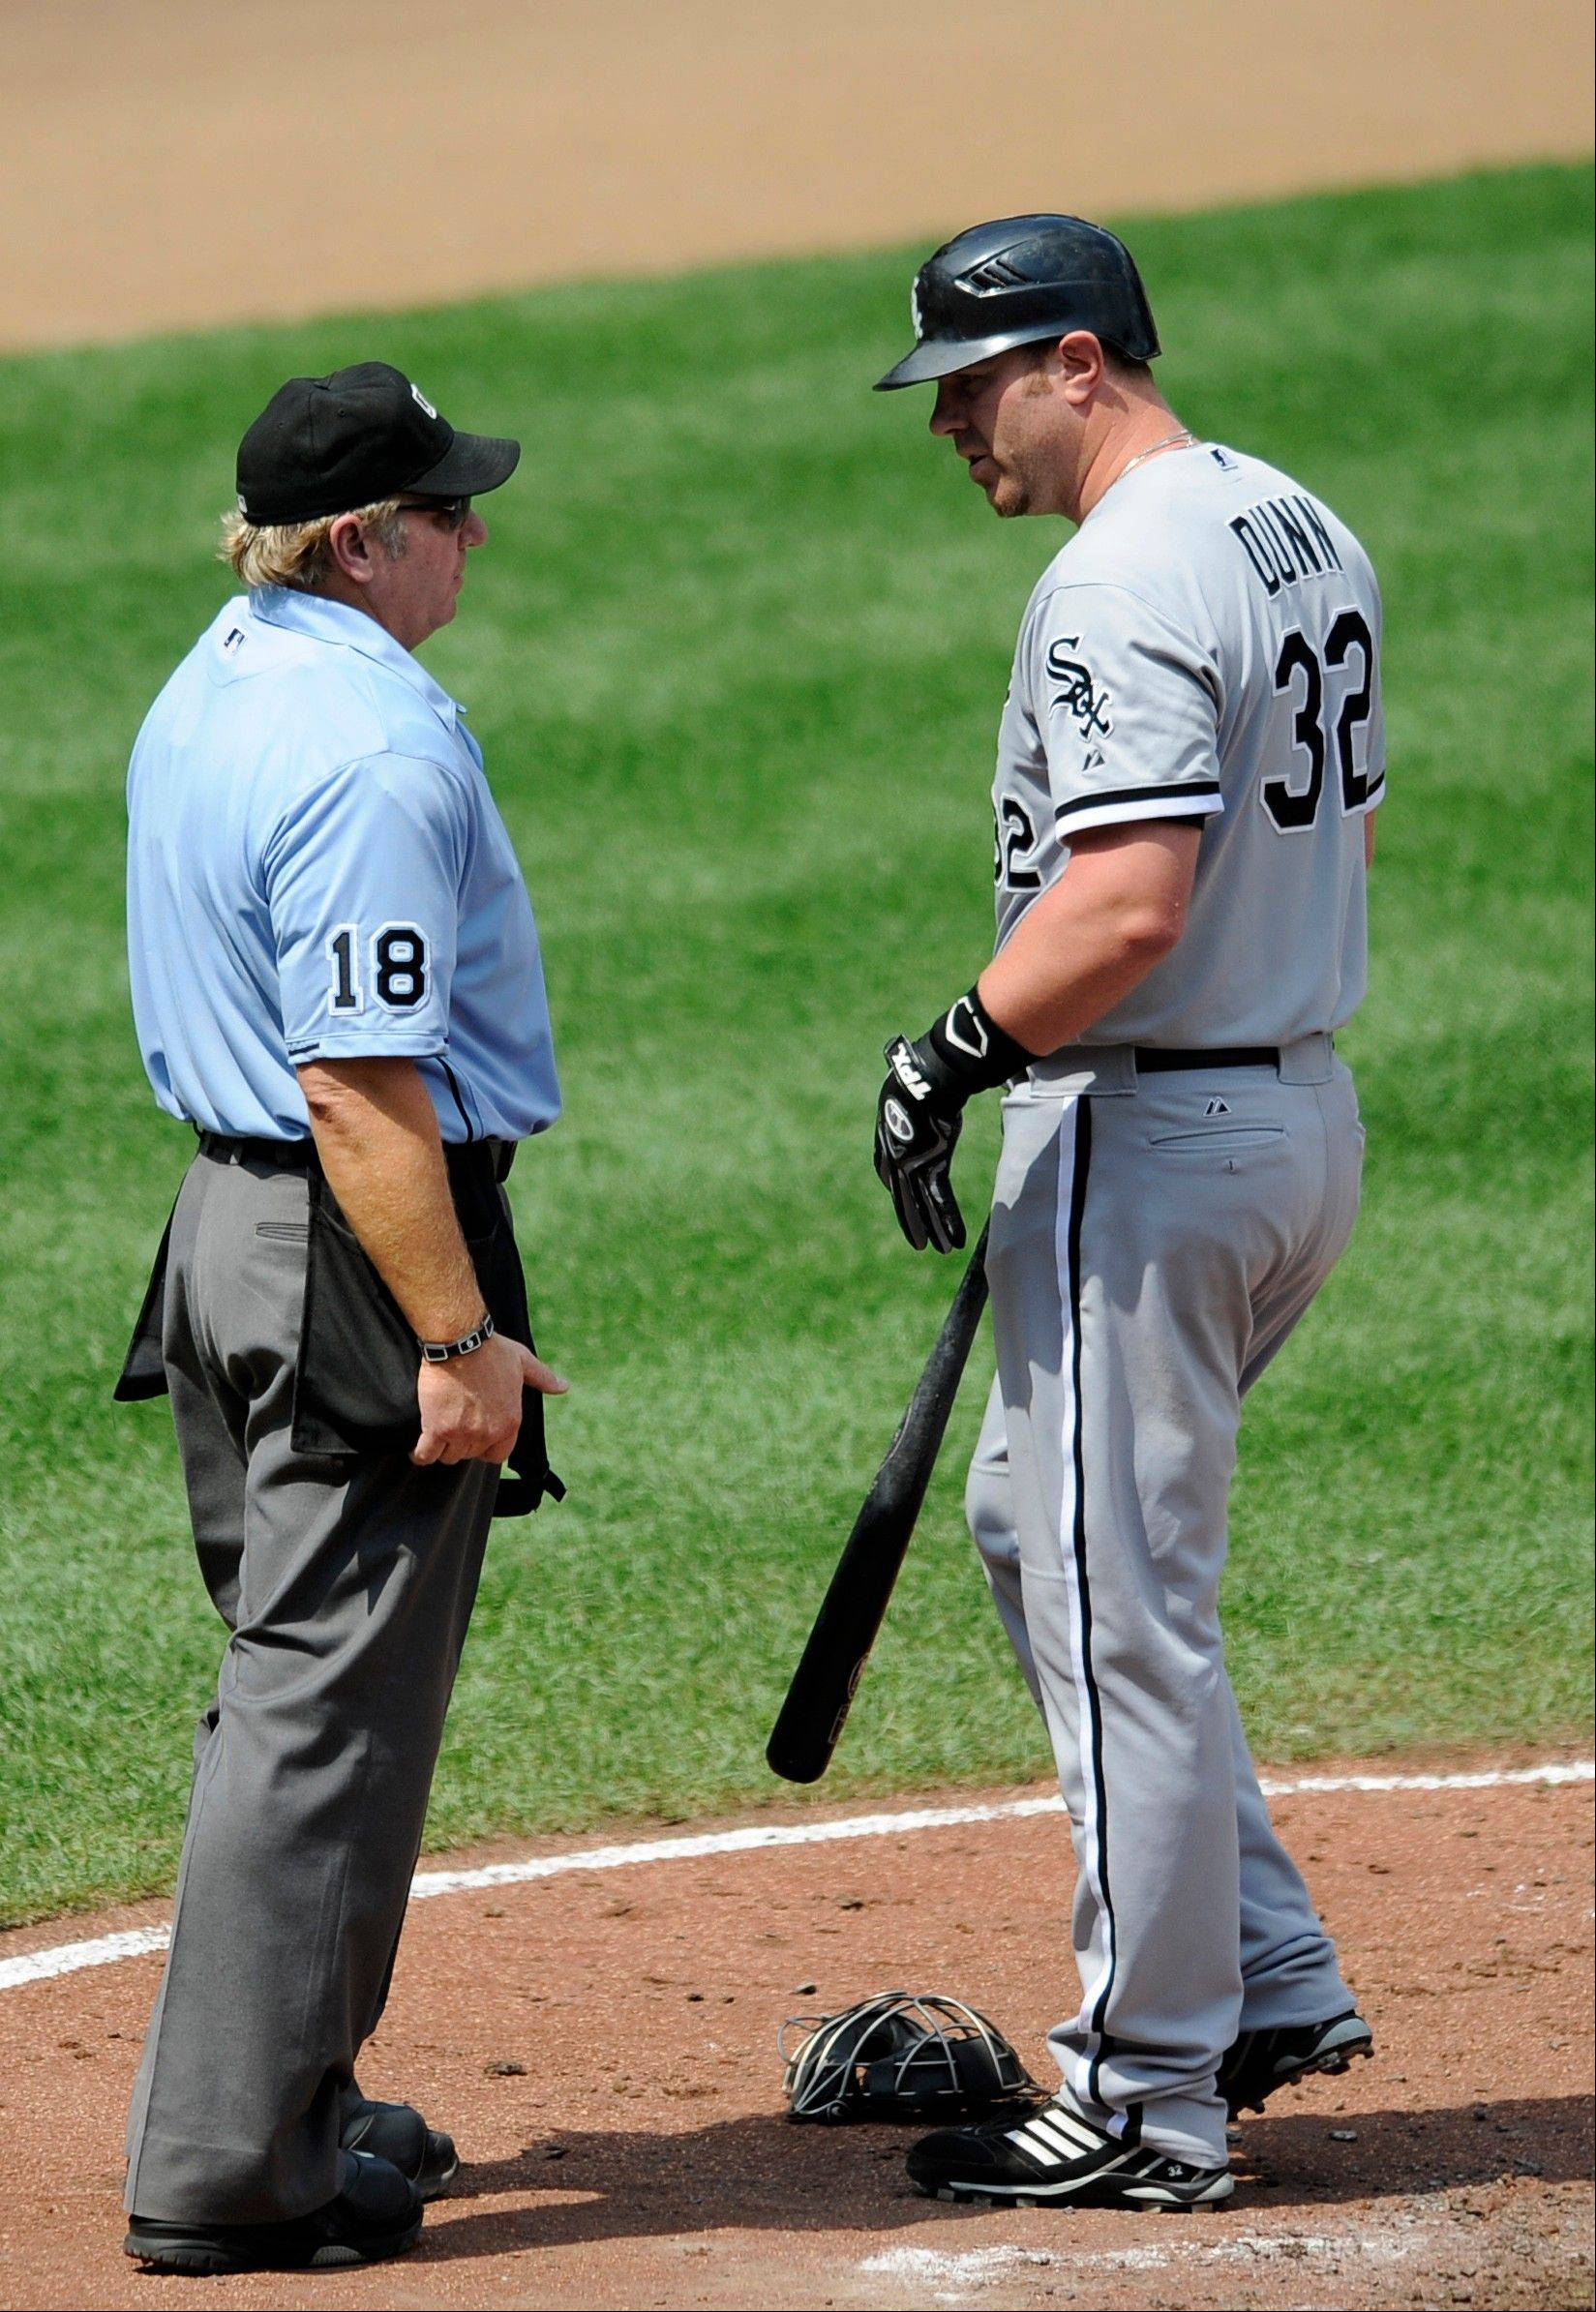 White Sox designated hitter Adam Dunn looks at home plate umpire Brian Runge after he struck out Thursday during the third inning against the Baltimore Orioles in Baltimore.